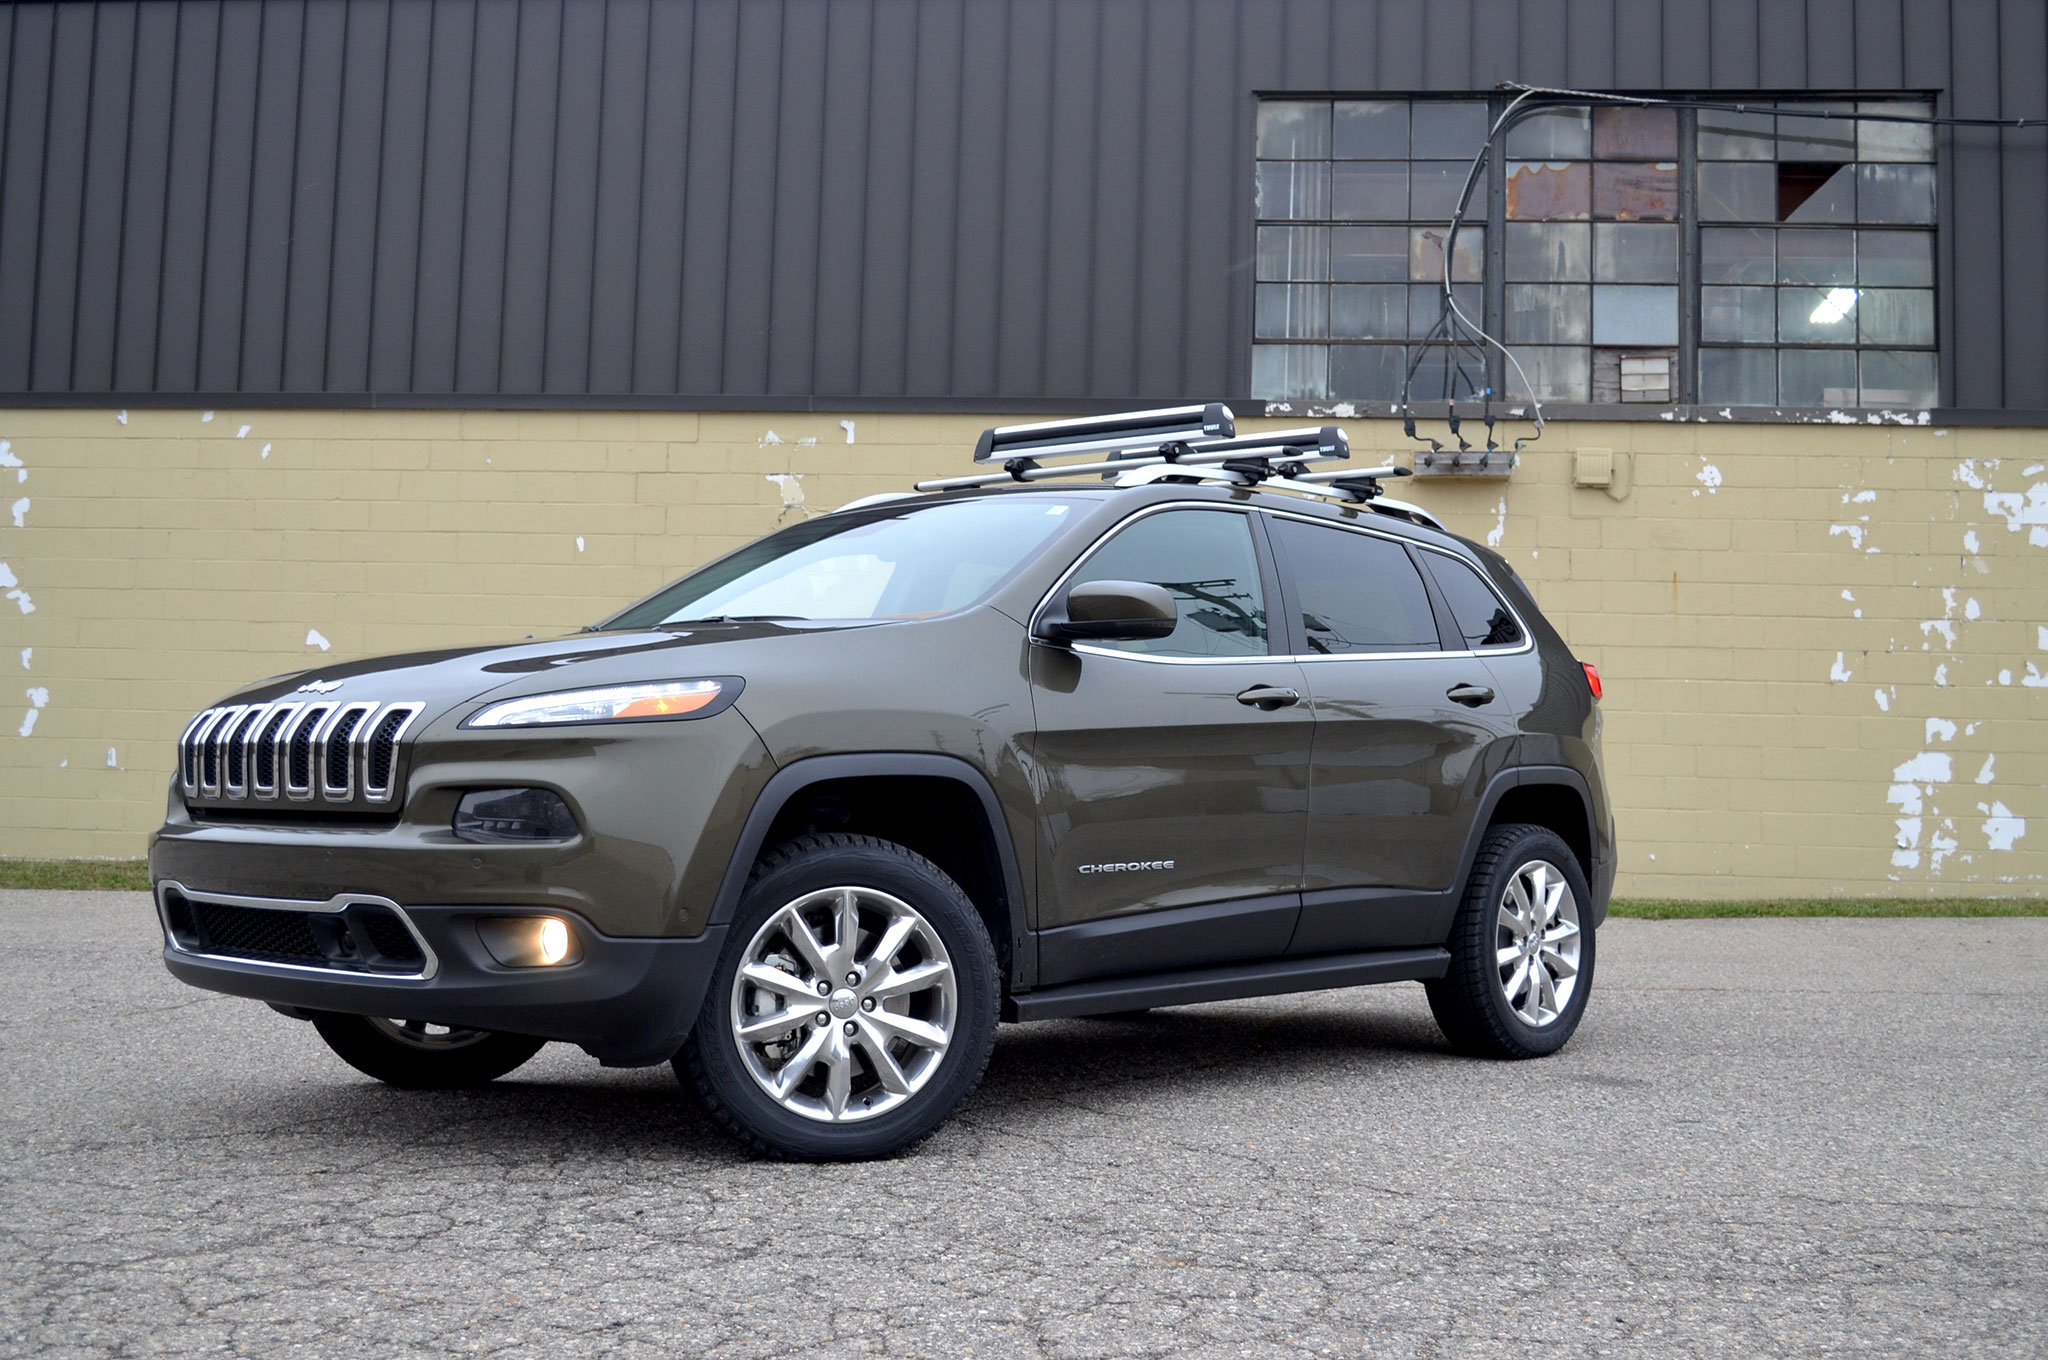 Jeep Cherokee Overland >> 2014 Jeep Cherokee Limited - Winter Fear and Winter Gear